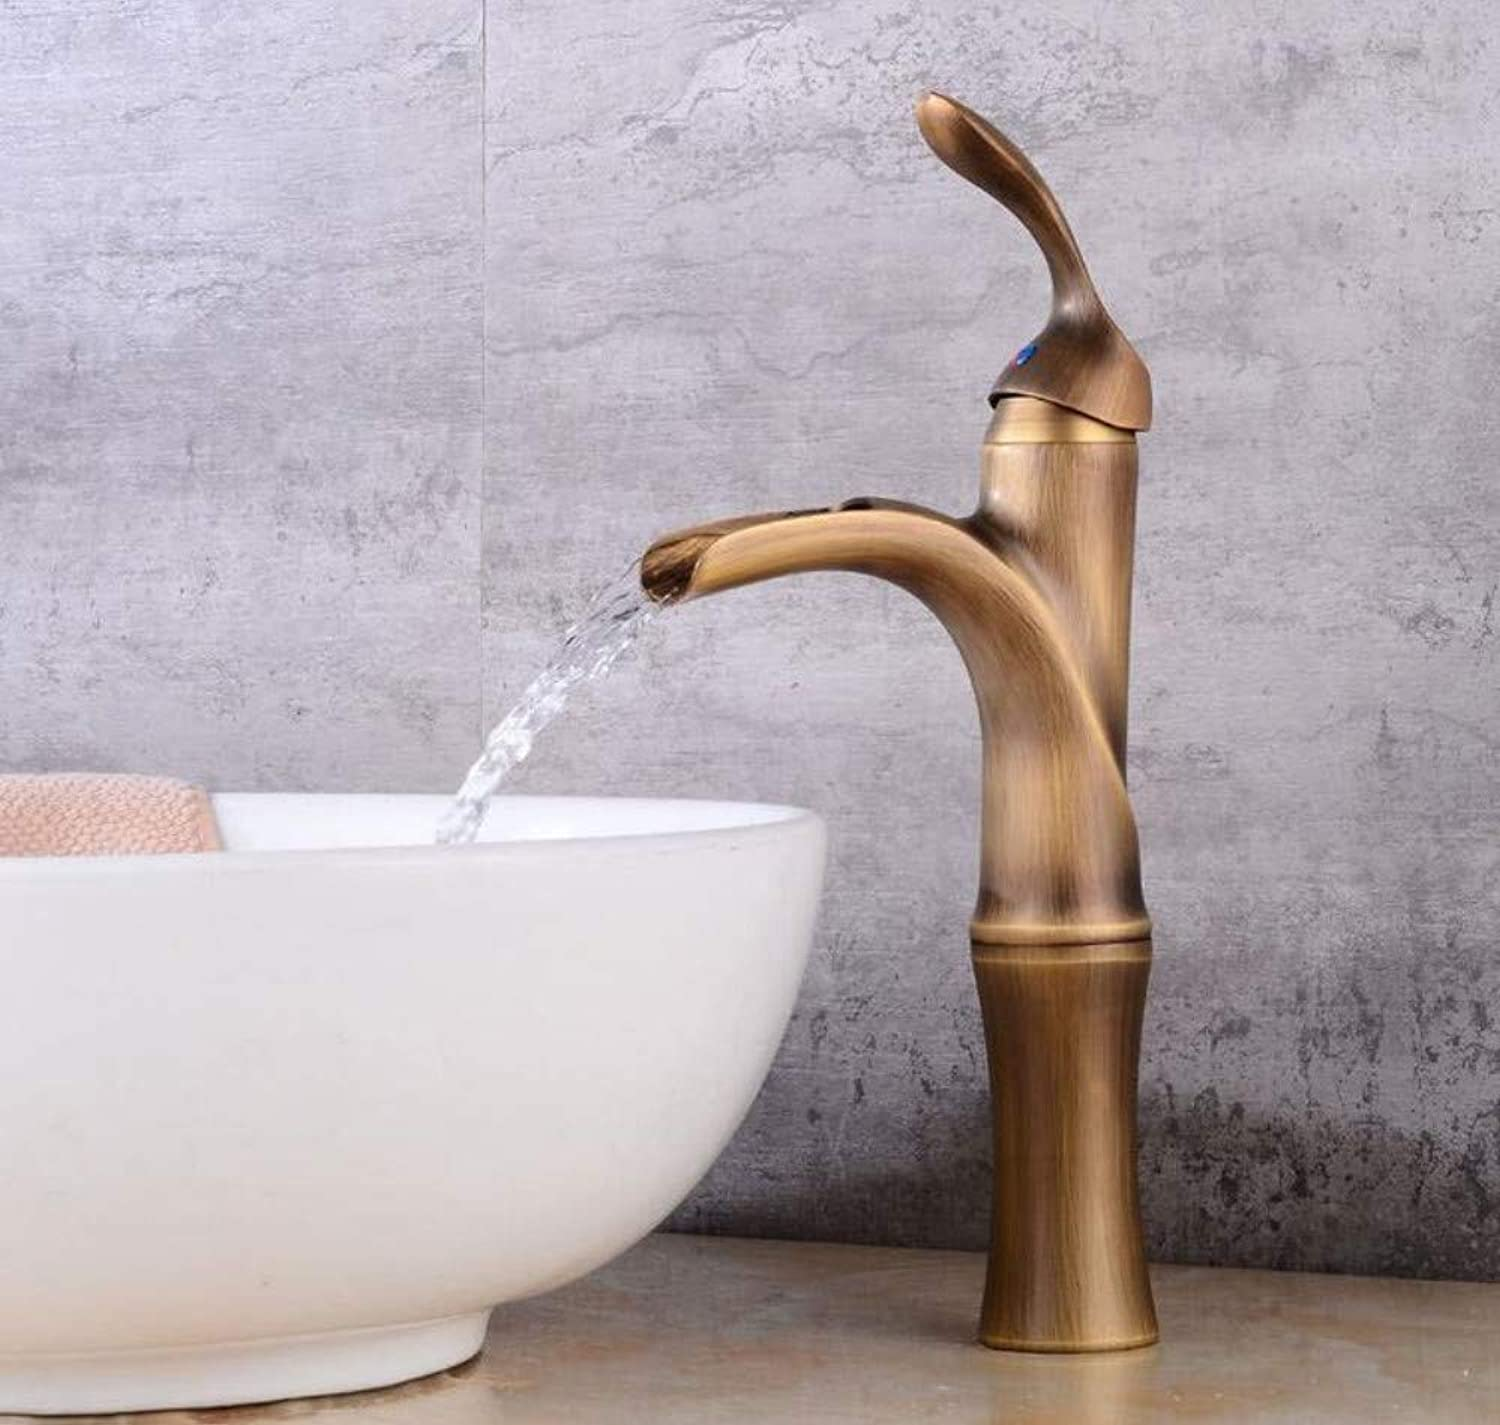 Bathroom Faucet Copper Hot and Cold Kitchen Sink Taps Kitchen Faucet Basin Heightening Faucet